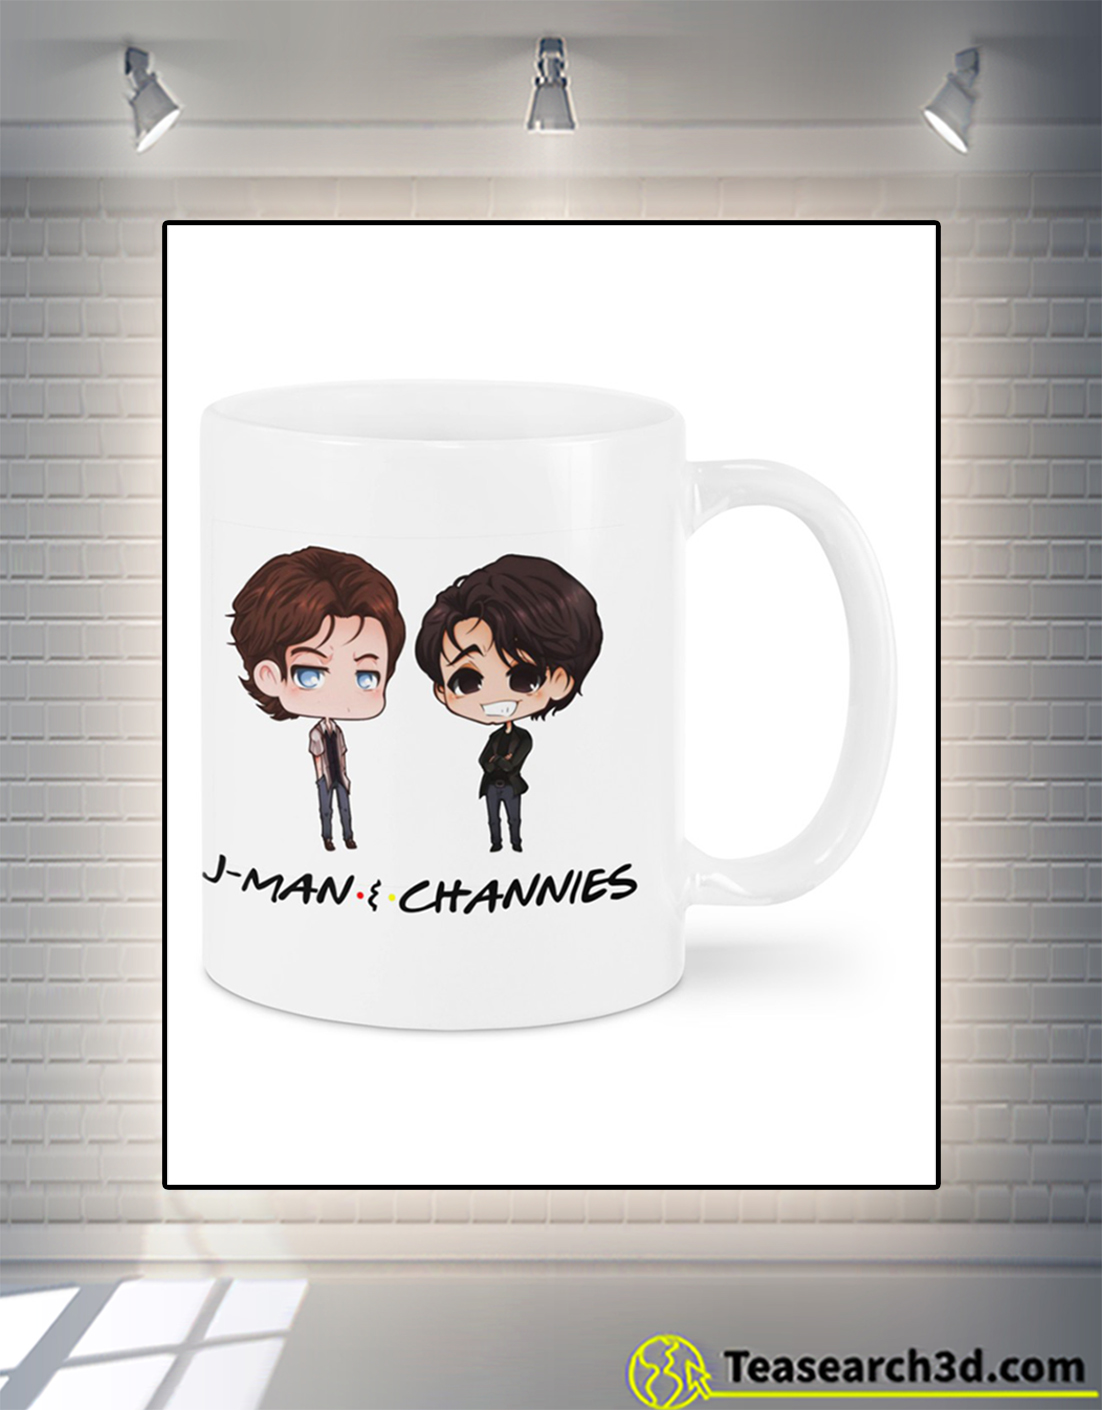 J-man channies mug